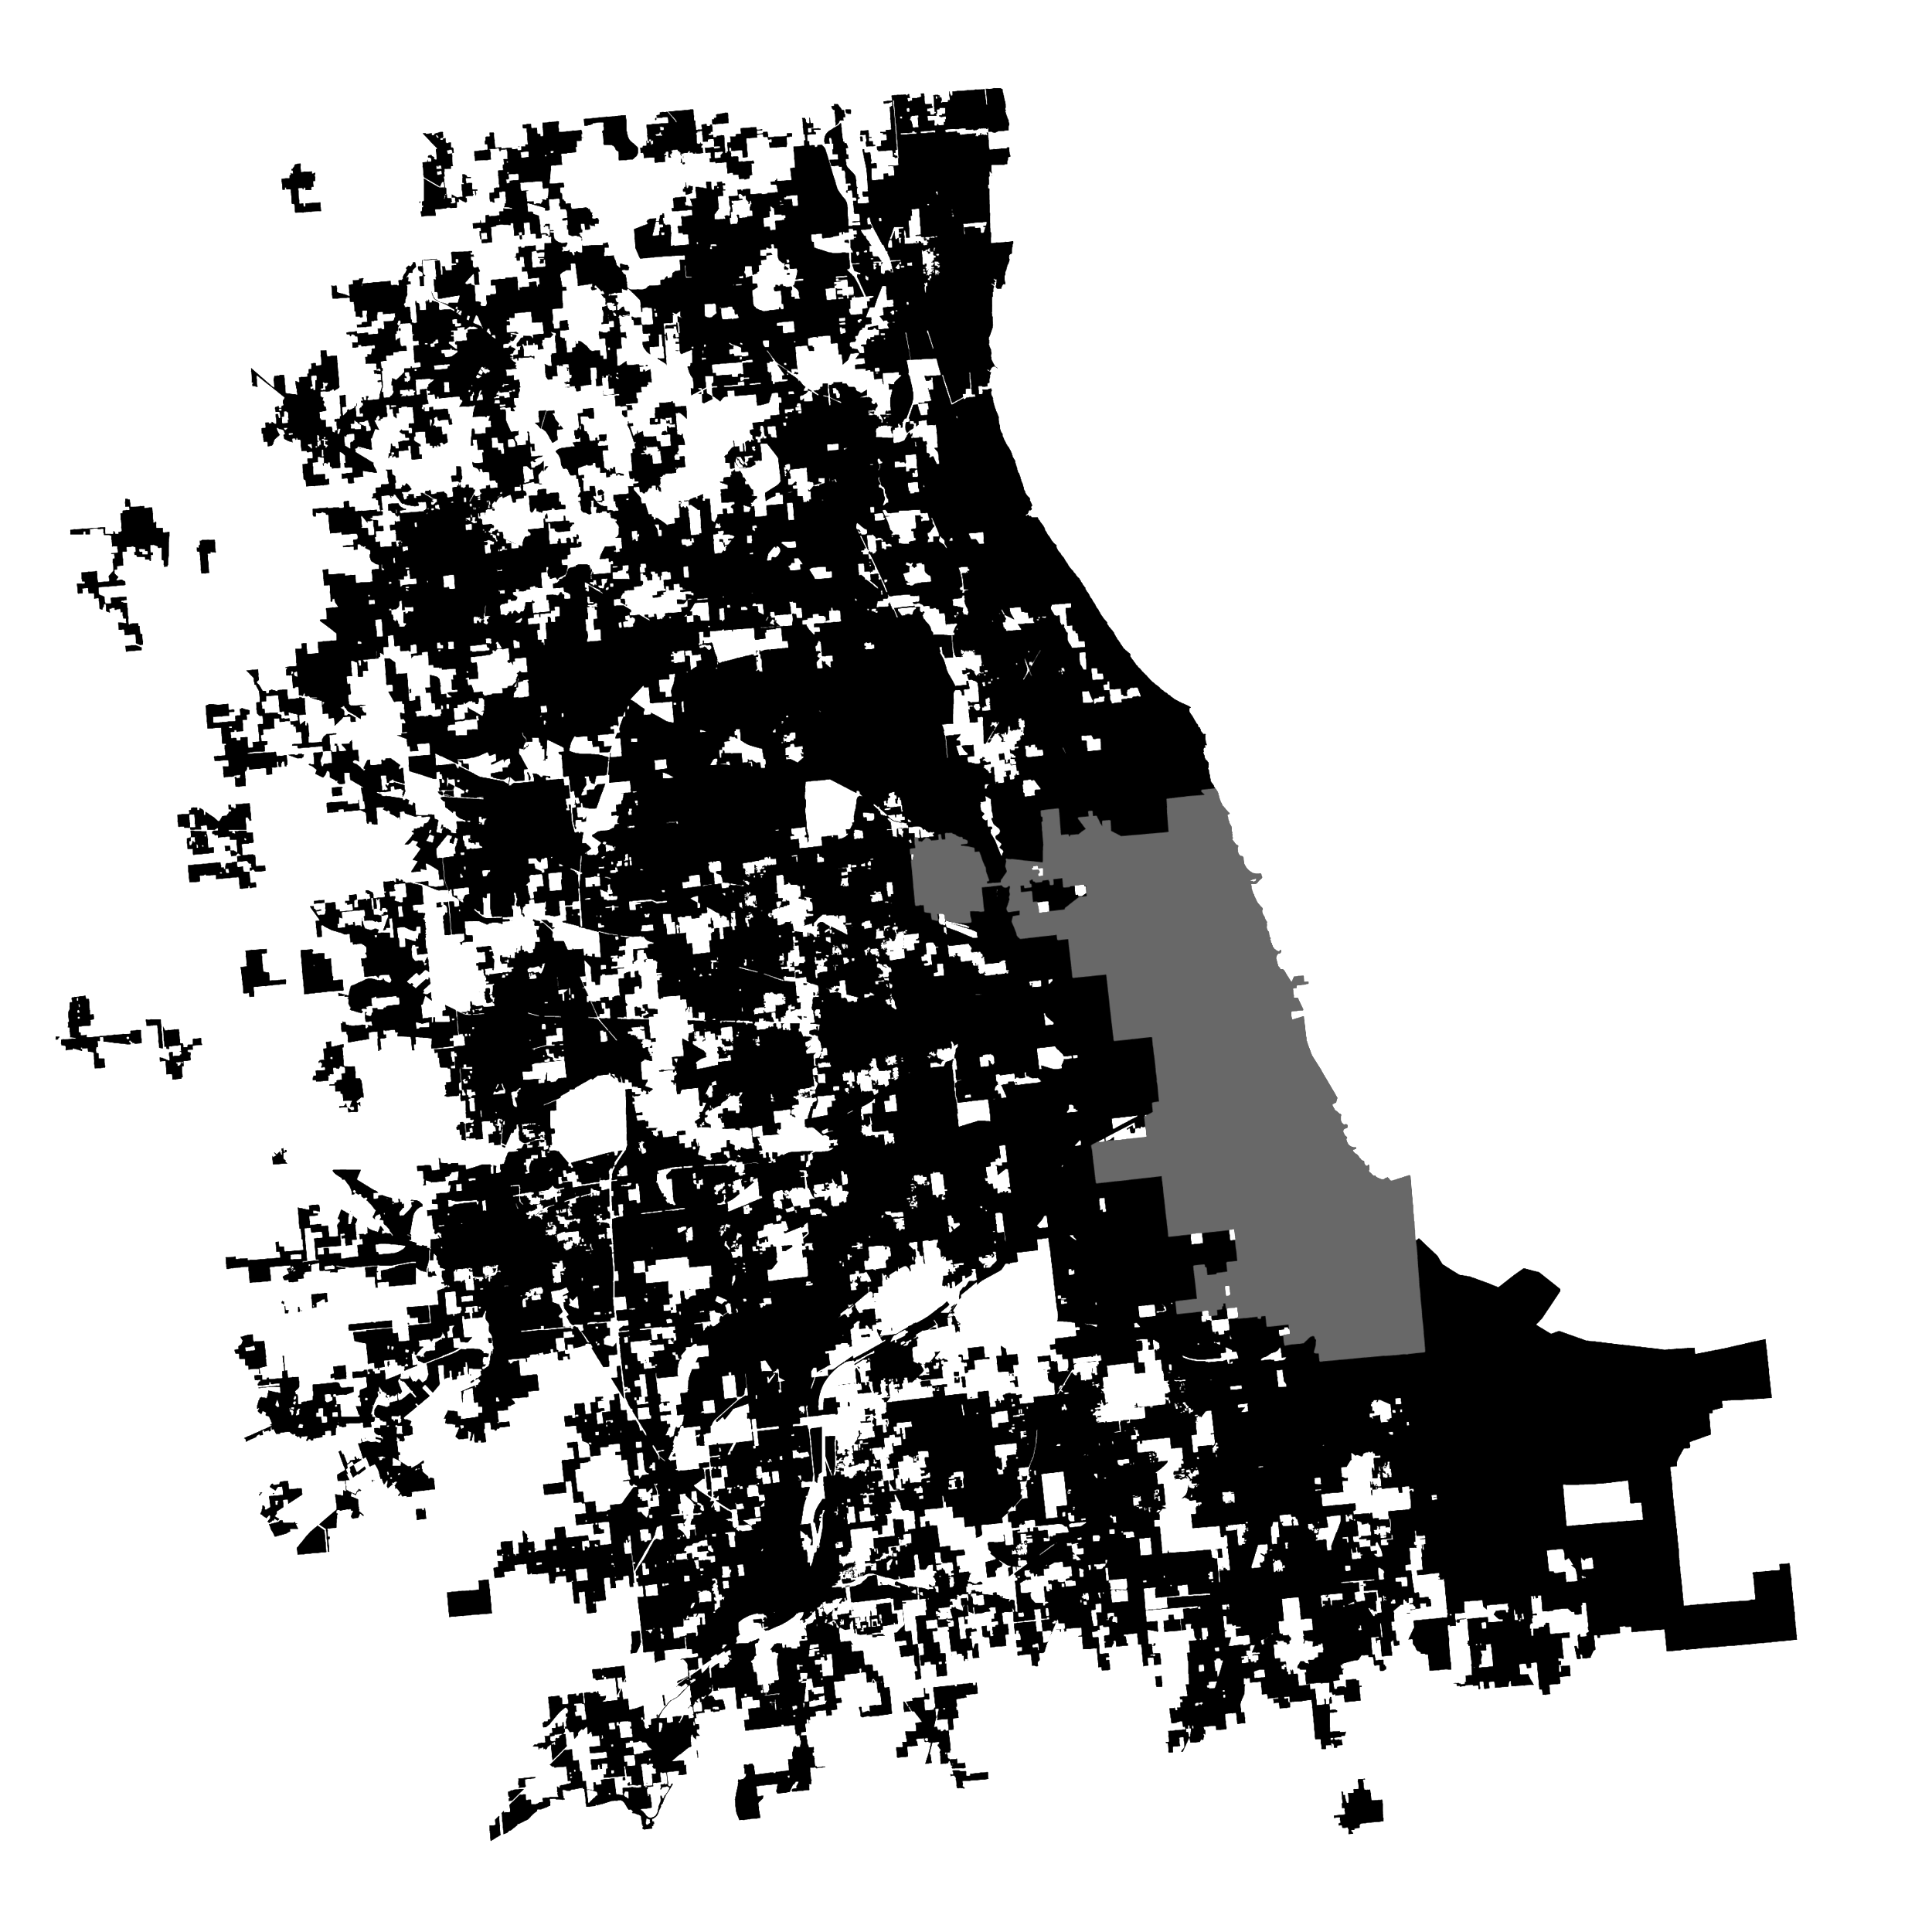 - But the shape of the City of Chicago is only part of the story of the greater Chicago metro area. Adding the surrounding cities into the picture, and you'll see that while Chicago is bounded by its historical limits, the municipalities nearby are under no such restrictions. Some of the most complex city boundaries in the entire country can be found in this area.